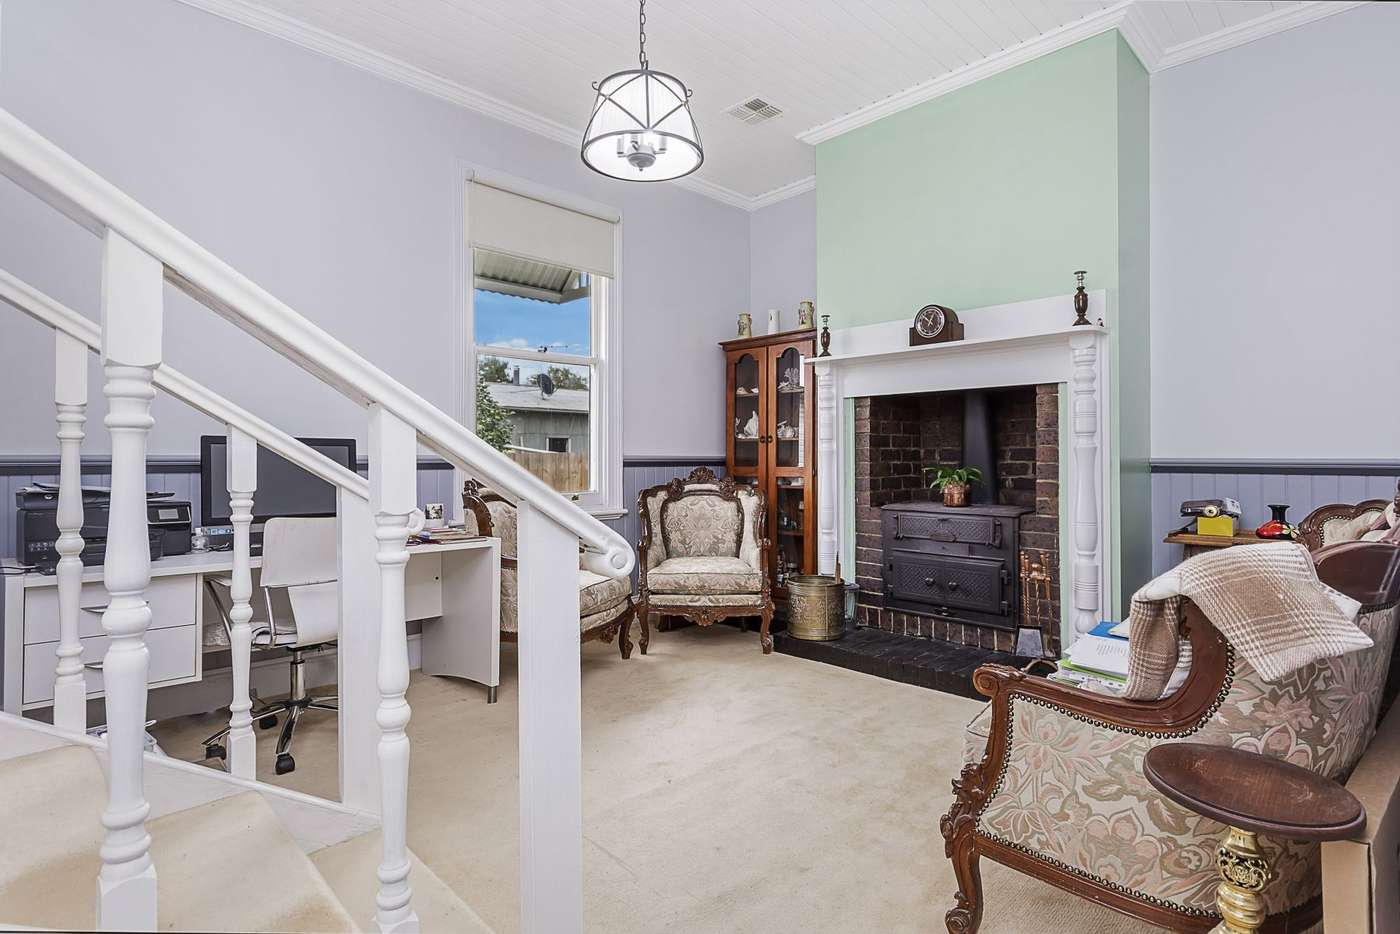 Seventh view of Homely house listing, 2 Church Street, Cressy TAS 7302